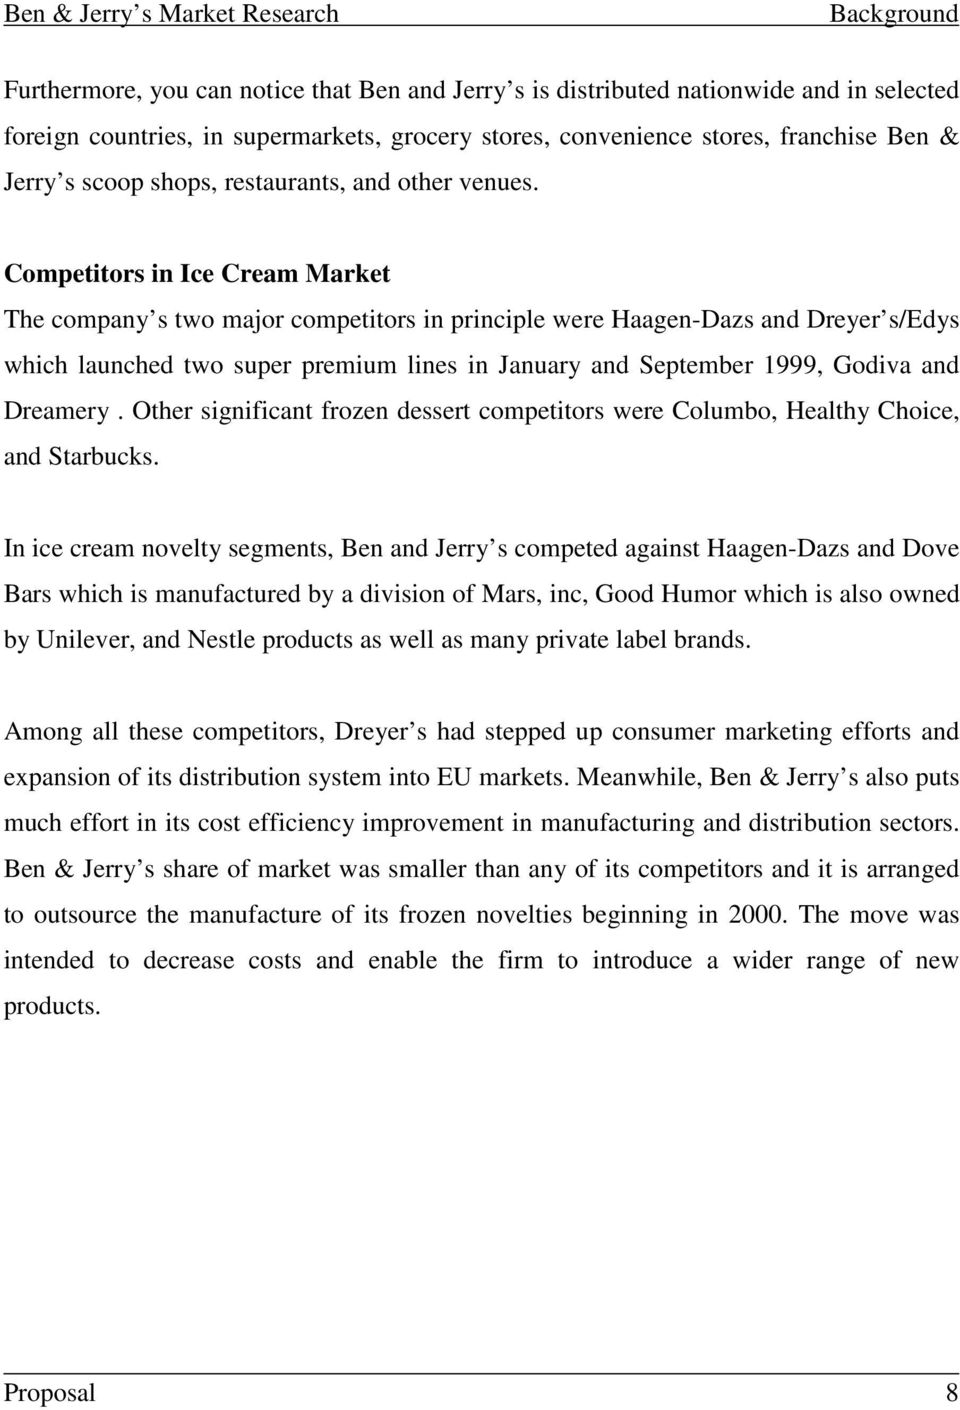 Competitors in Ice Cream Market The company s two major competitors in principle were Haagen-Dazs and Dreyer s/edys which launched two super premium lines in January and September 1999, Godiva and